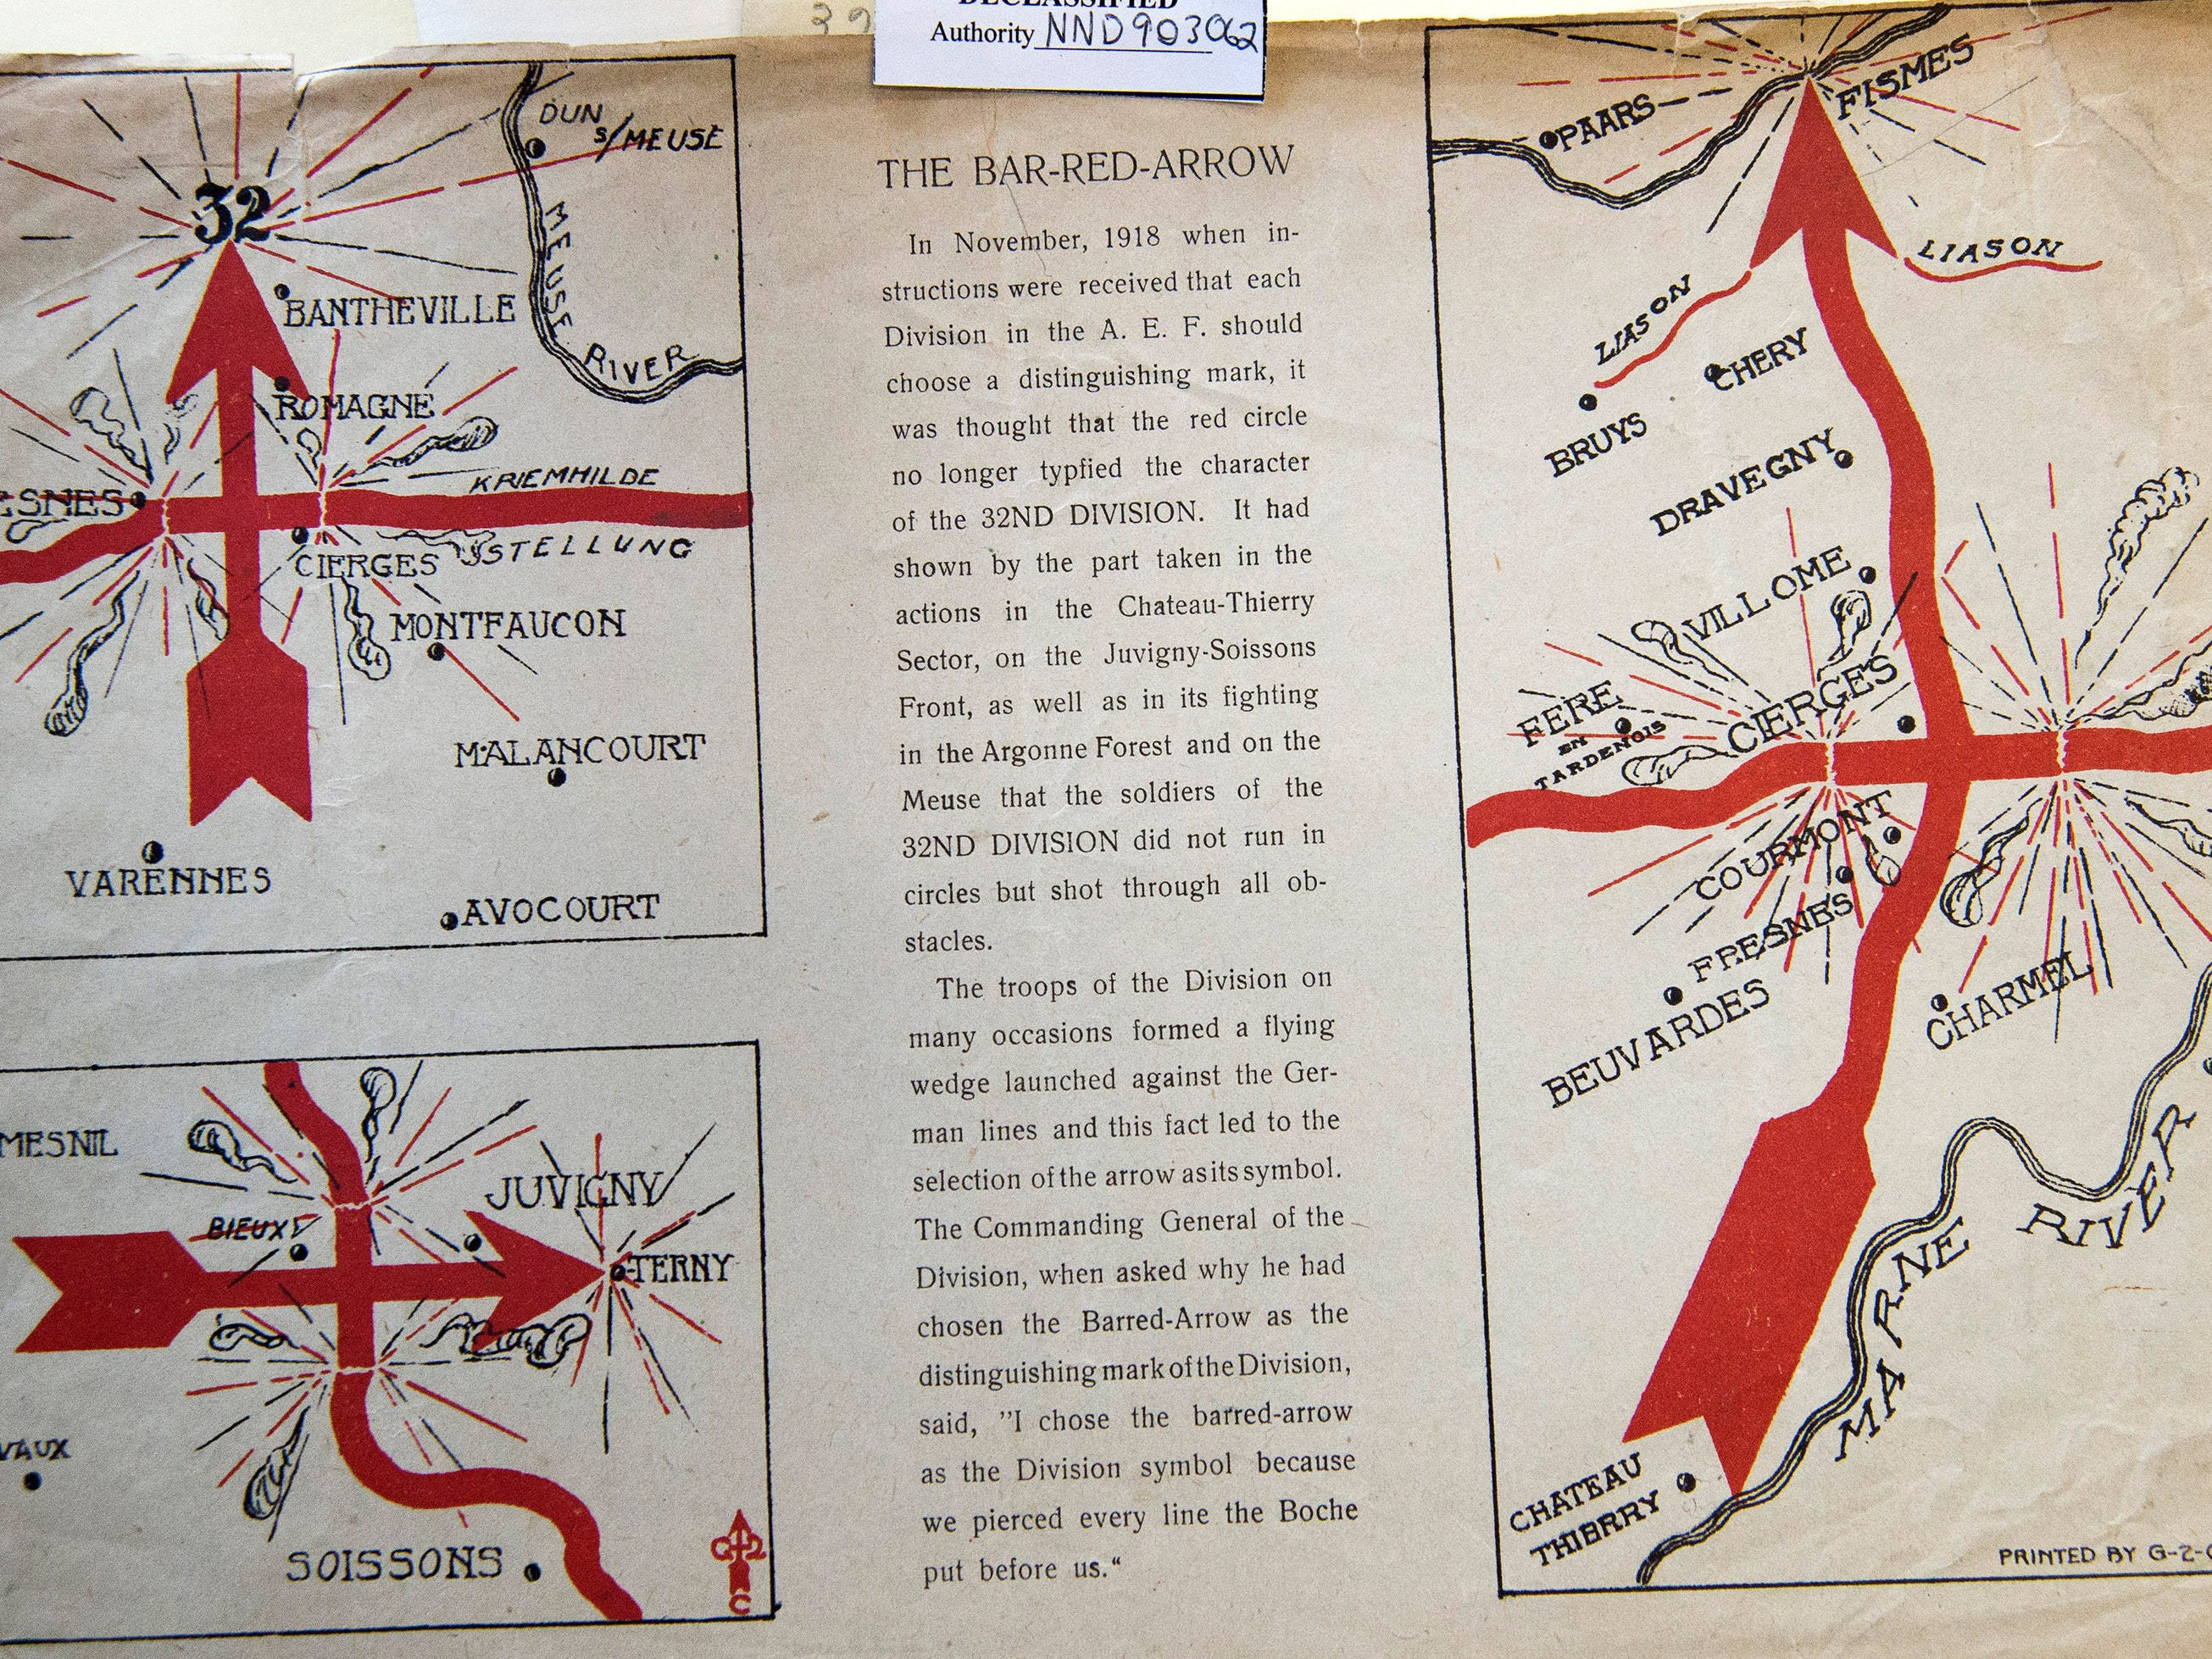 A pamphlet illustrates the 32nd Red Arrow Division's three major offensive actions in World War I - the Second Battle of the Marne, Battle of Juvigny and the Meuse-Argonne Offensive. The division of national guard units from Wisconsin and Michigan got the nickname because it sliced through enemy lines like a red arrow.